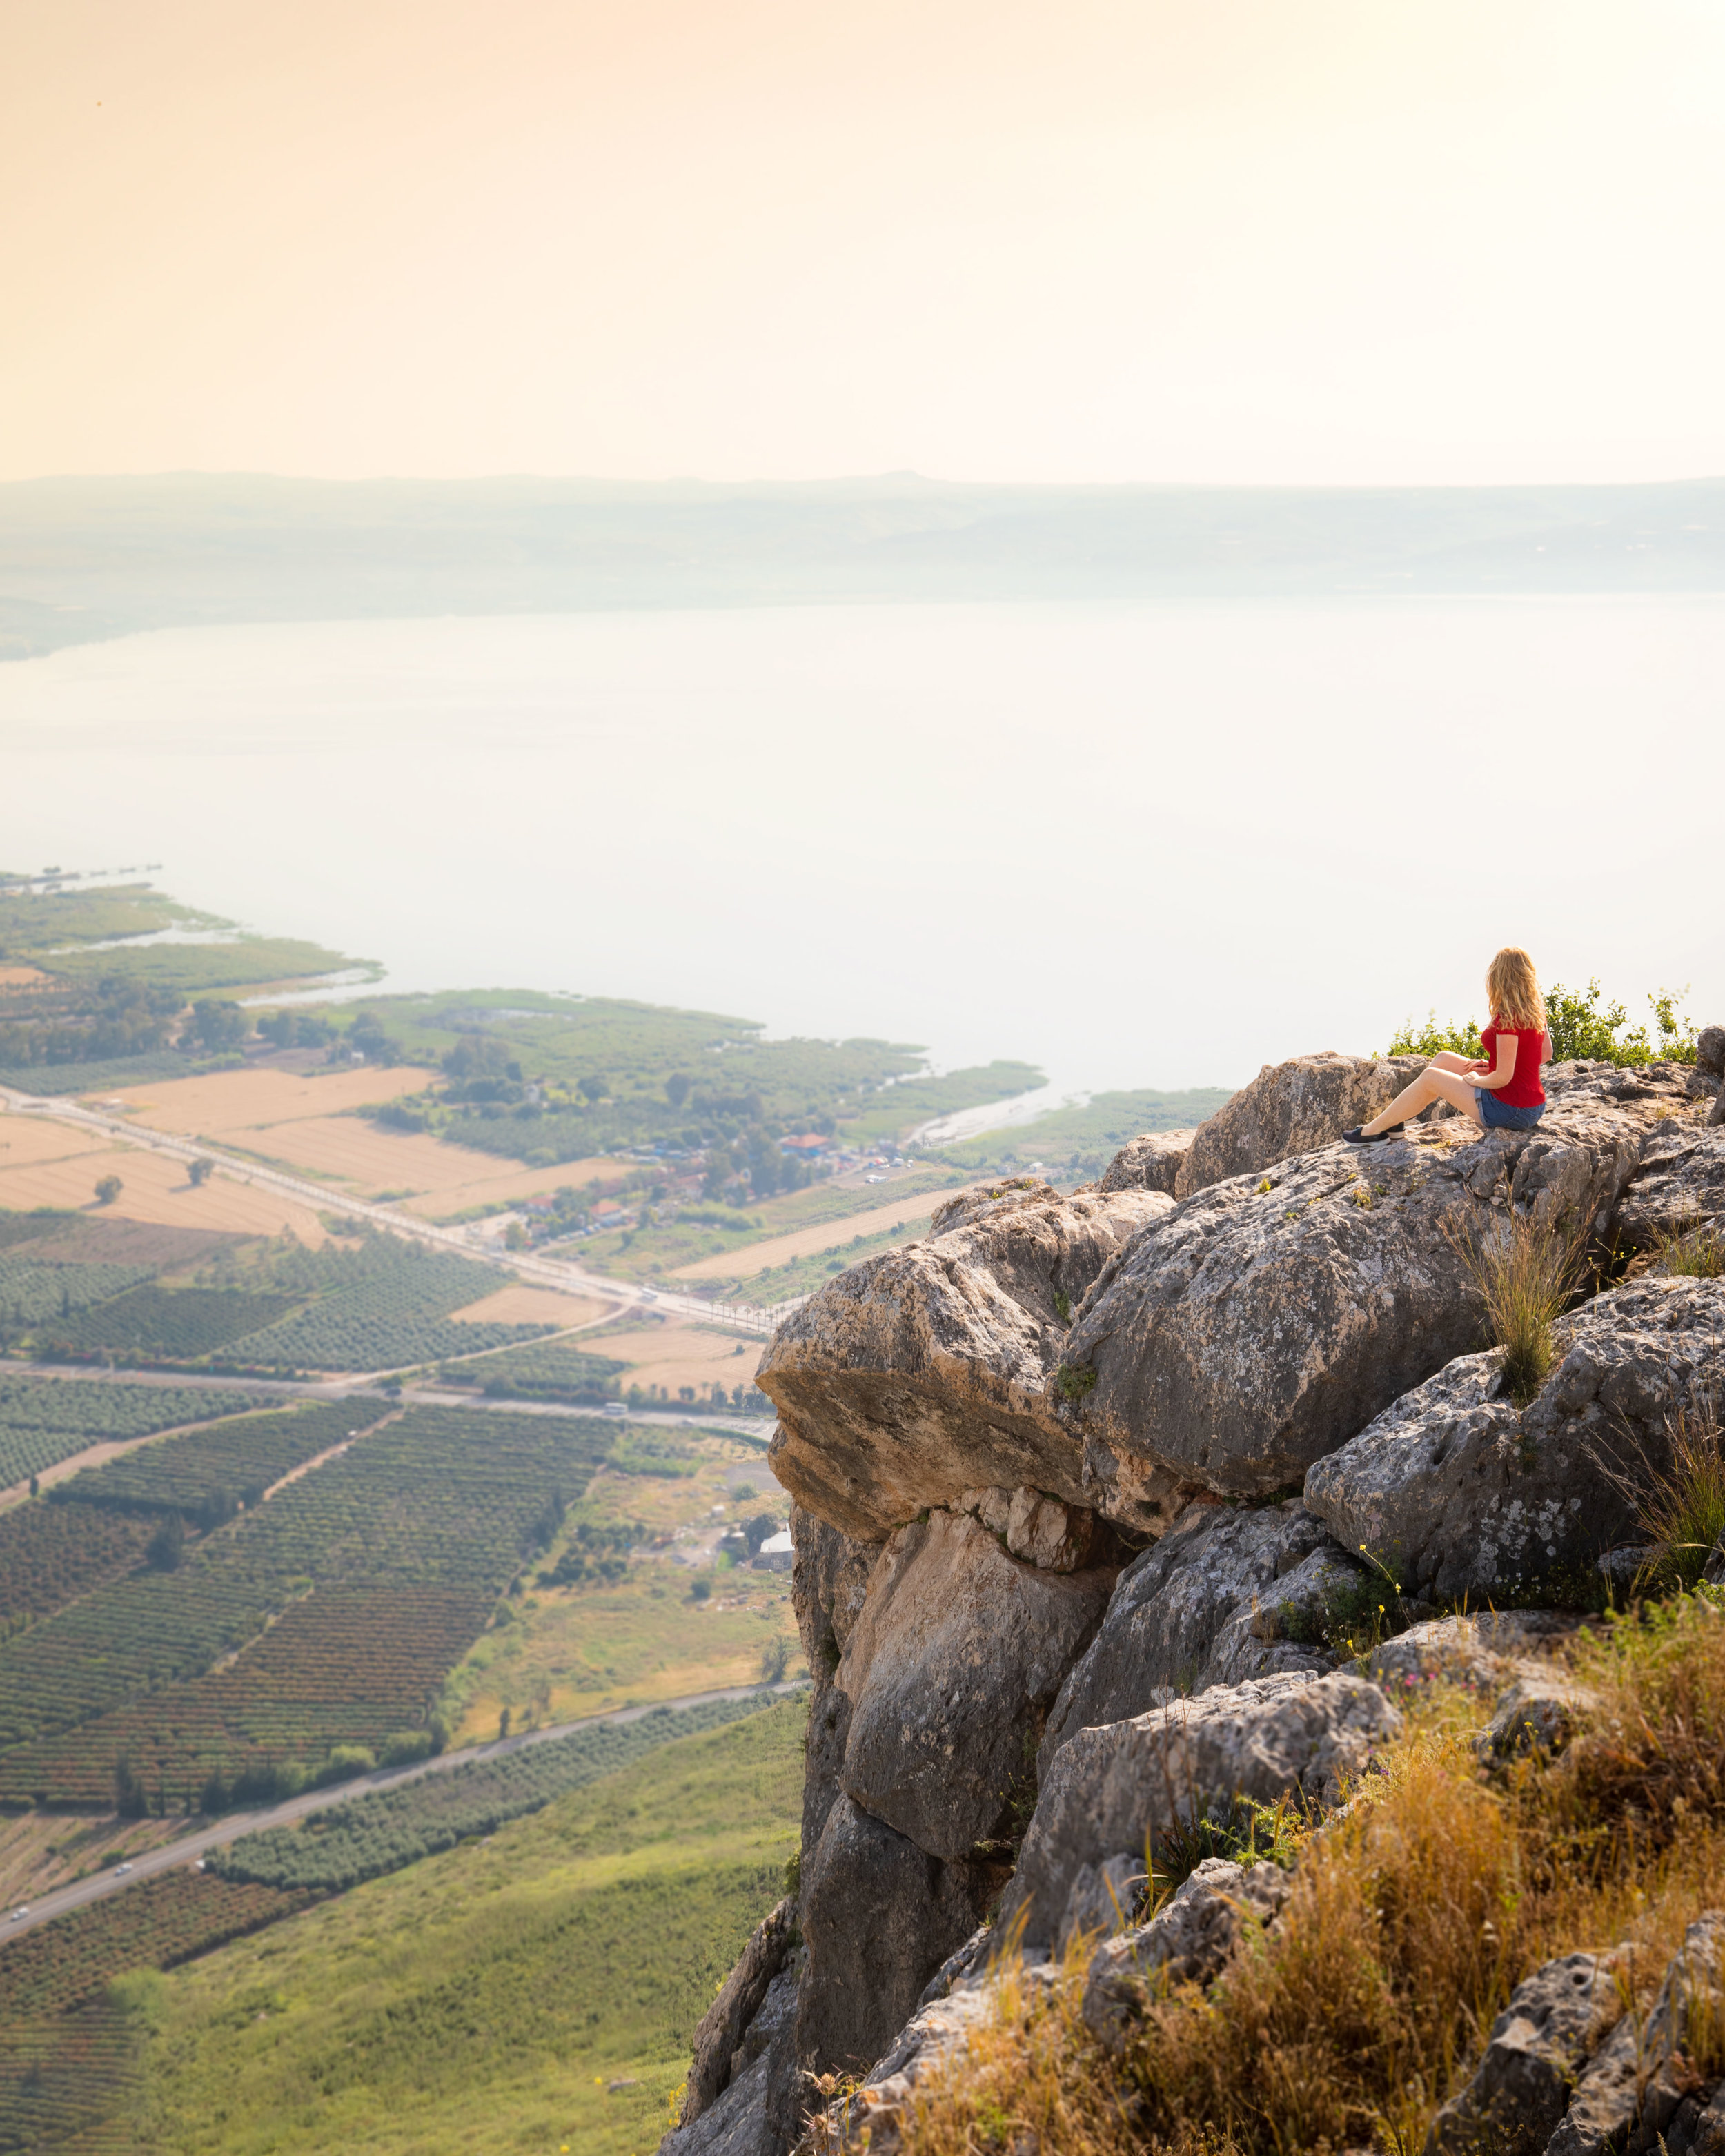 Instagrammable places in Israel - Mount Arbel